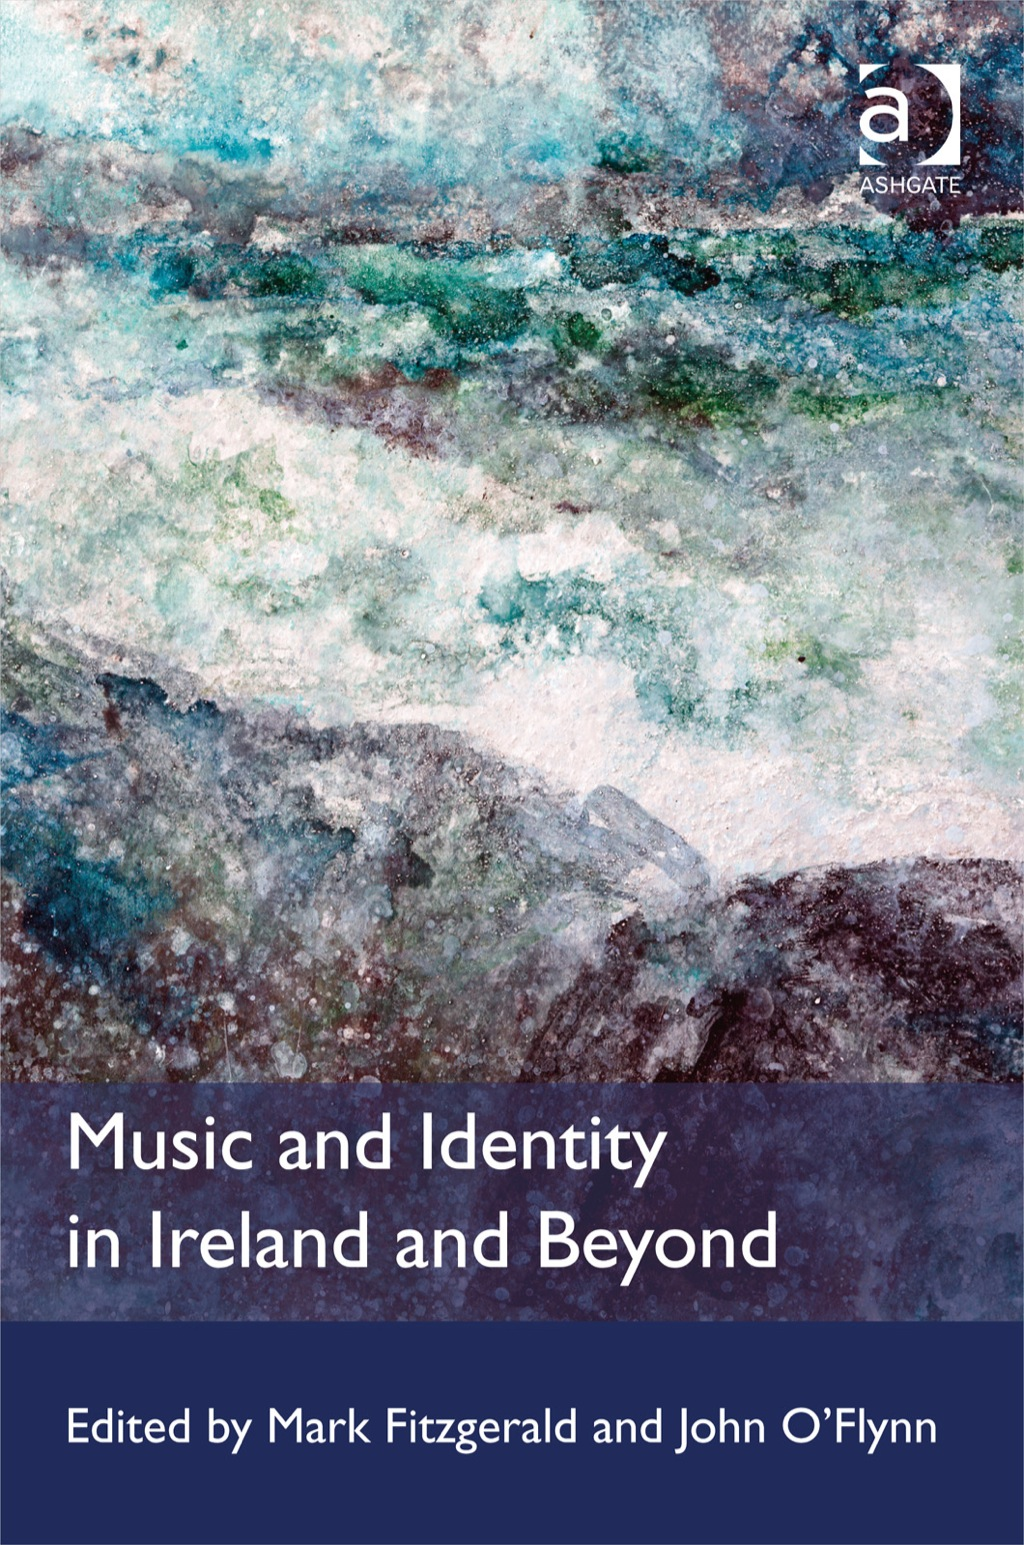 Music and Identity in Ireland and Beyond (eBook Rental)